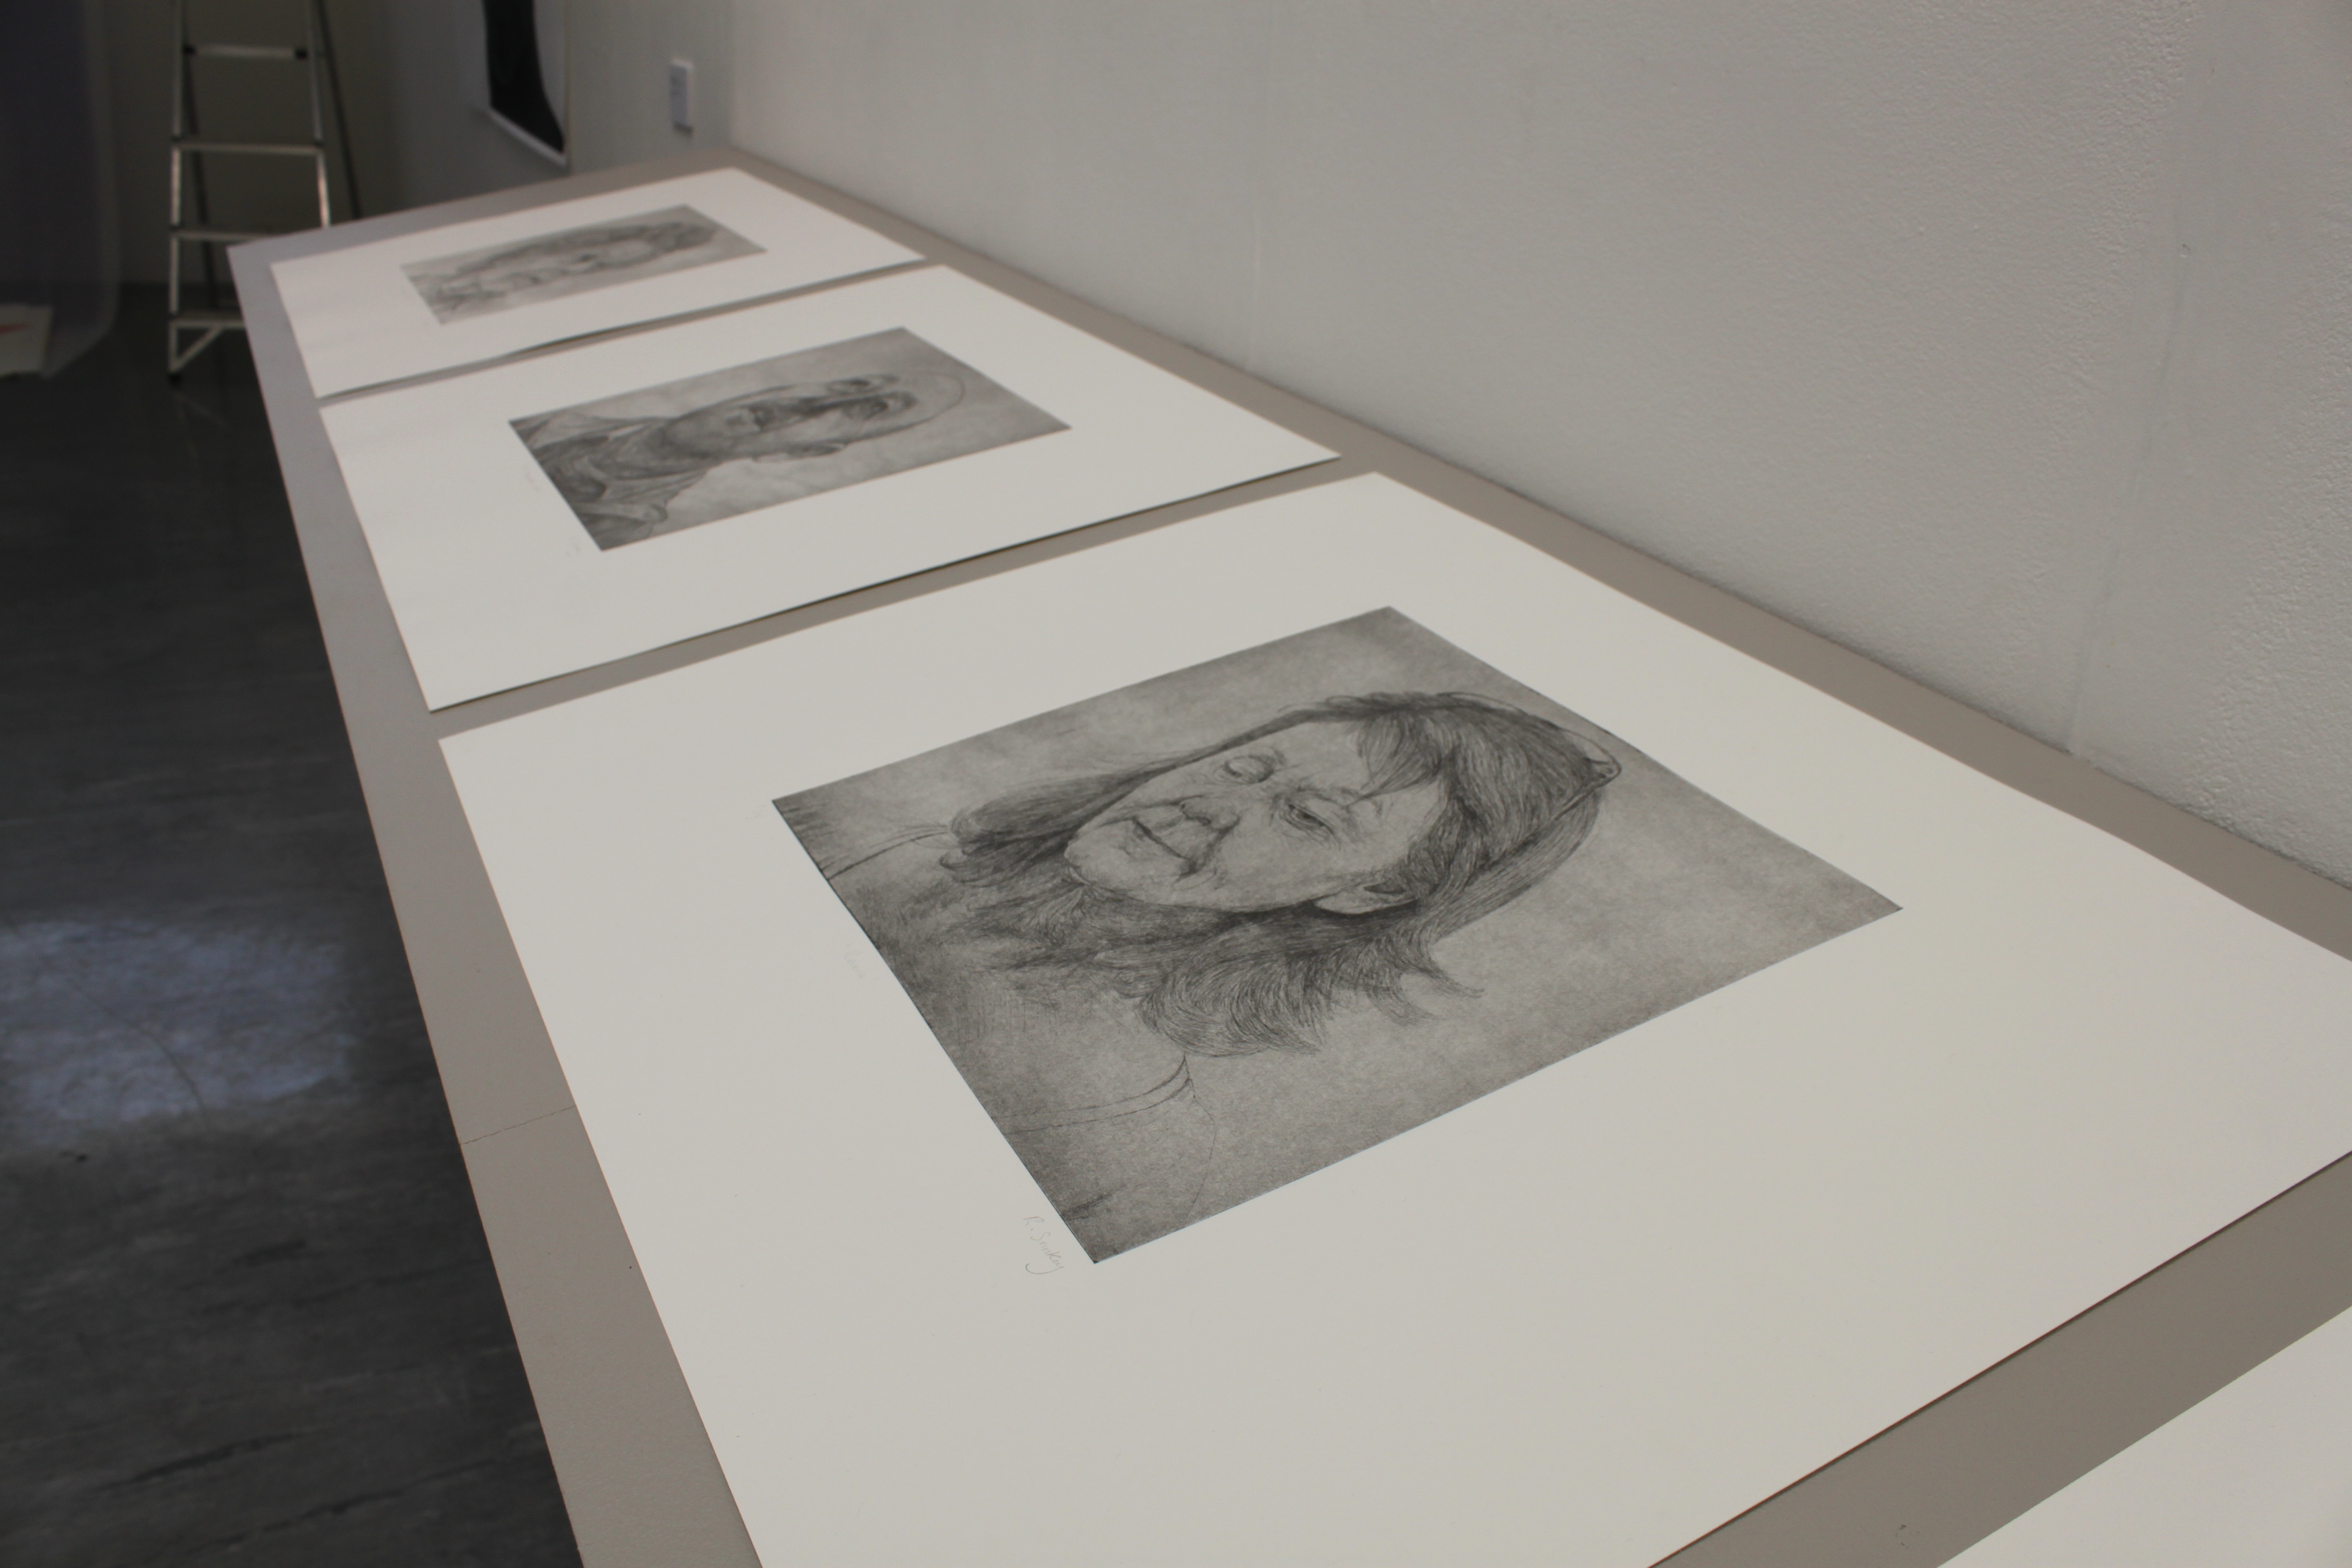 Quiet Exchanges Series (close up 2), 2018, 5 prints, Etchings, 3m shelf. University of Brighton Graduate Show 2018.